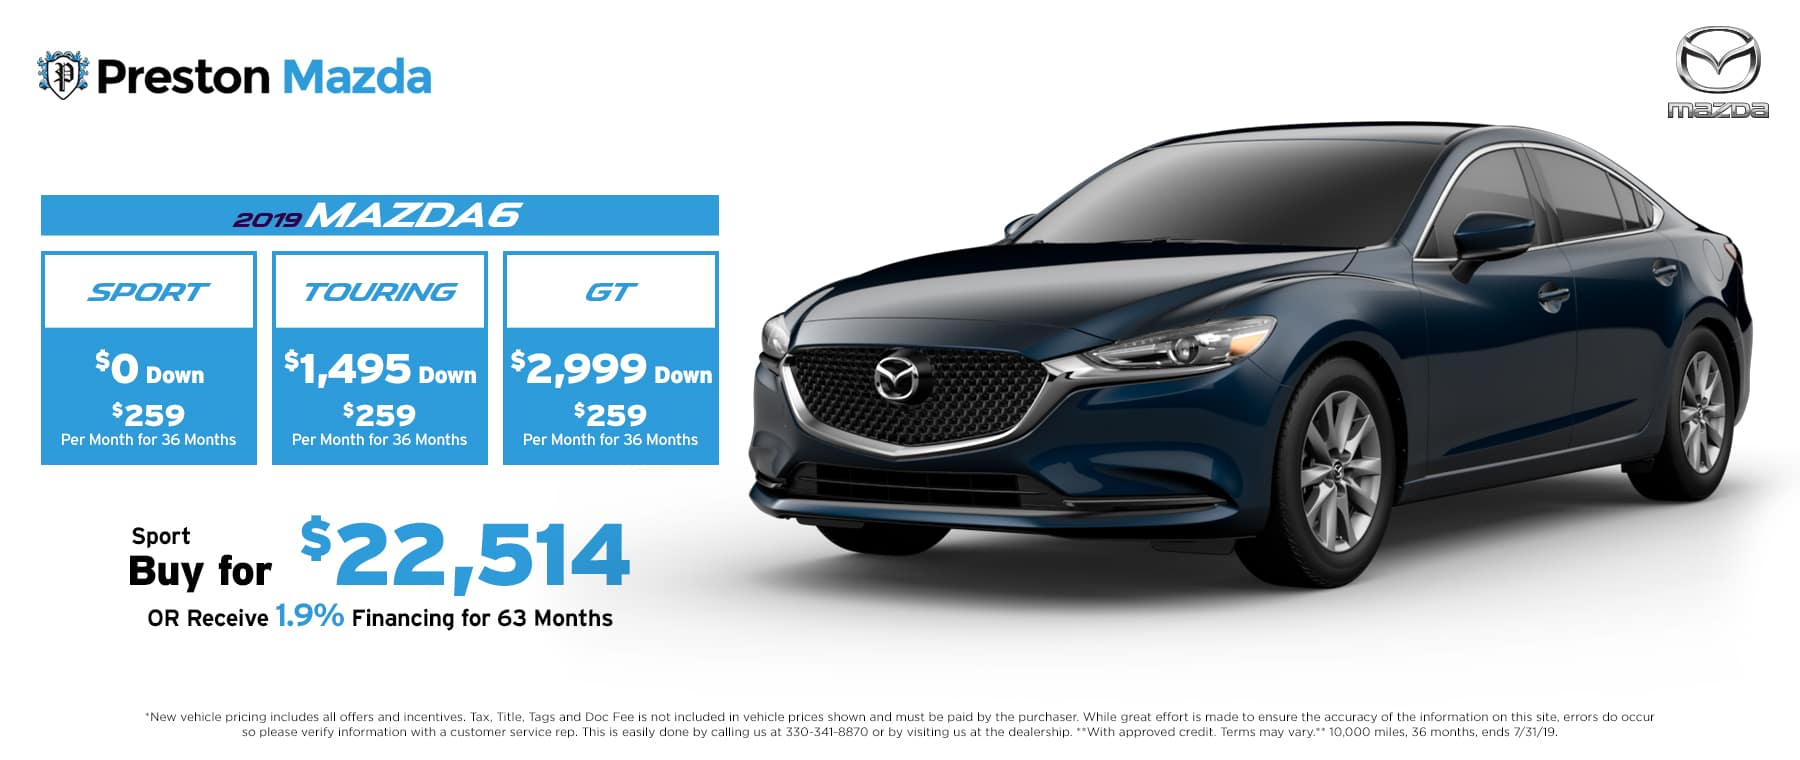 July special on the 2019 Mazda6